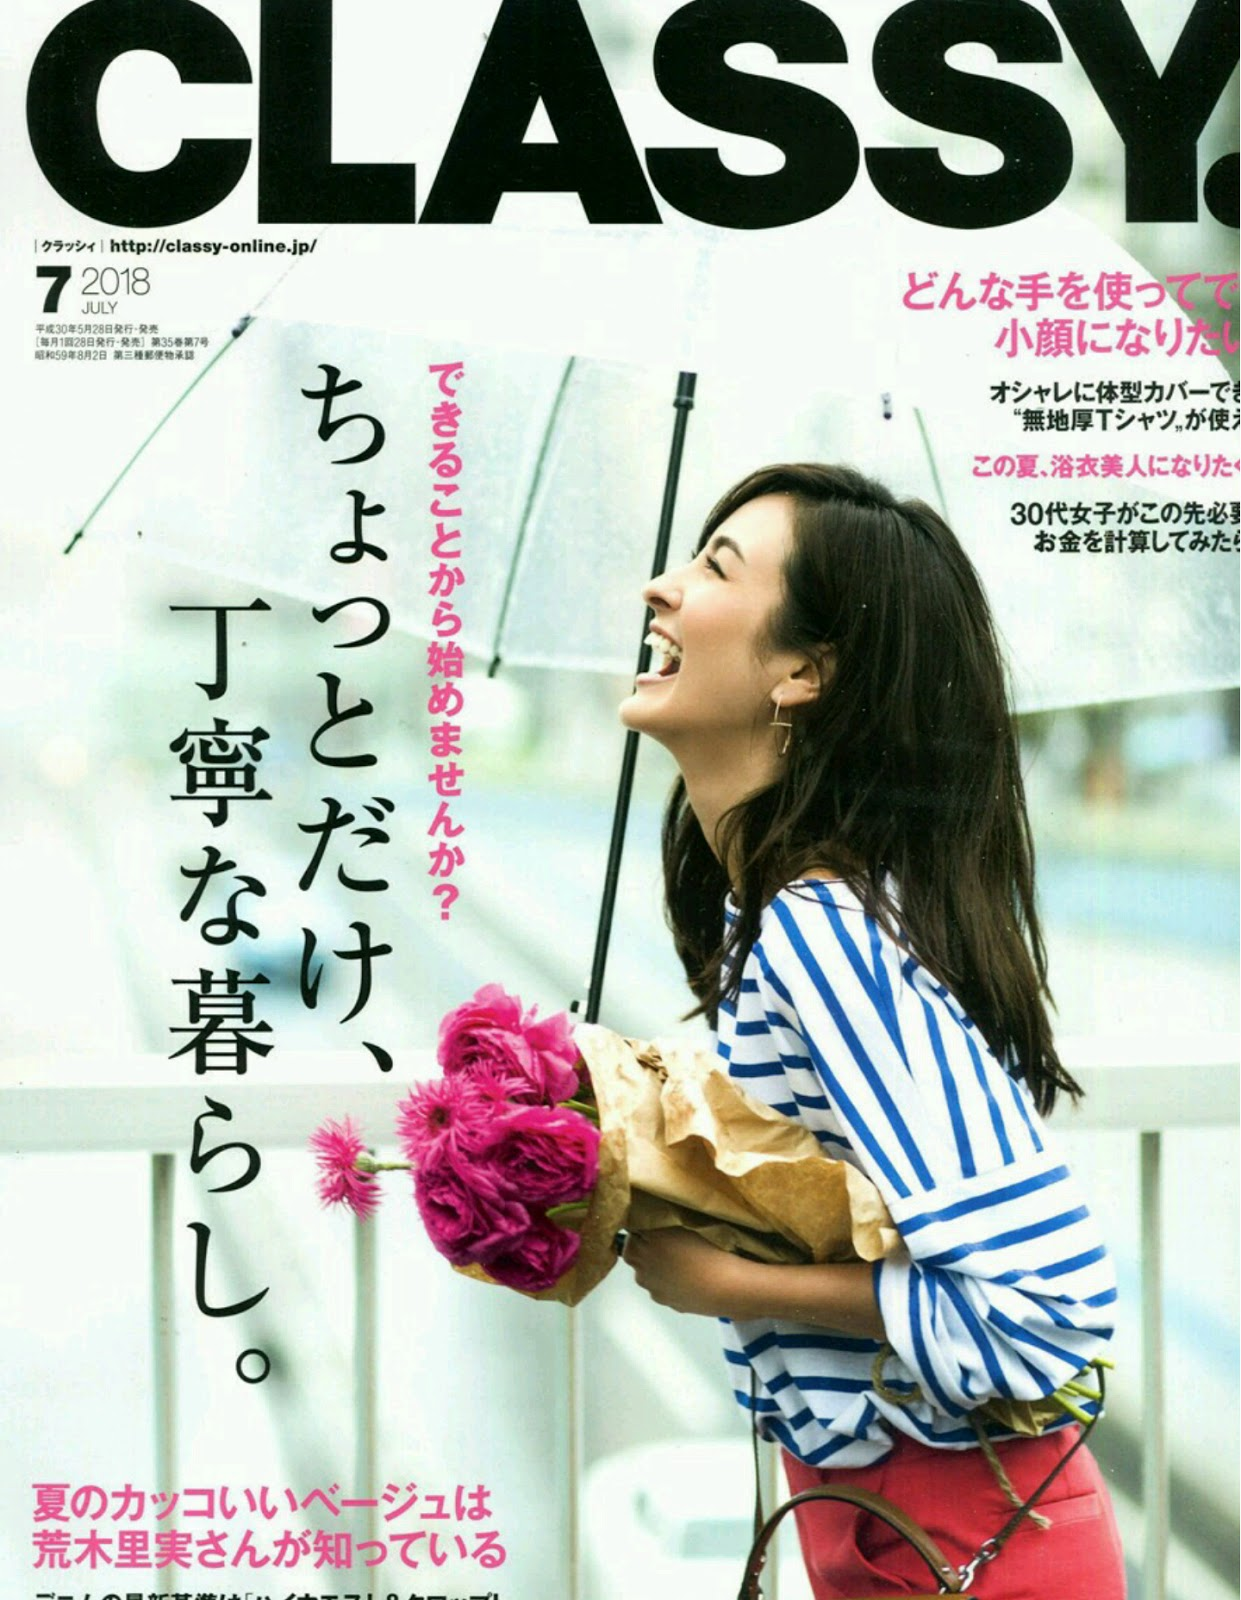 Classy July 2018 Issue, Free Japanese Fashion Magazine Scans